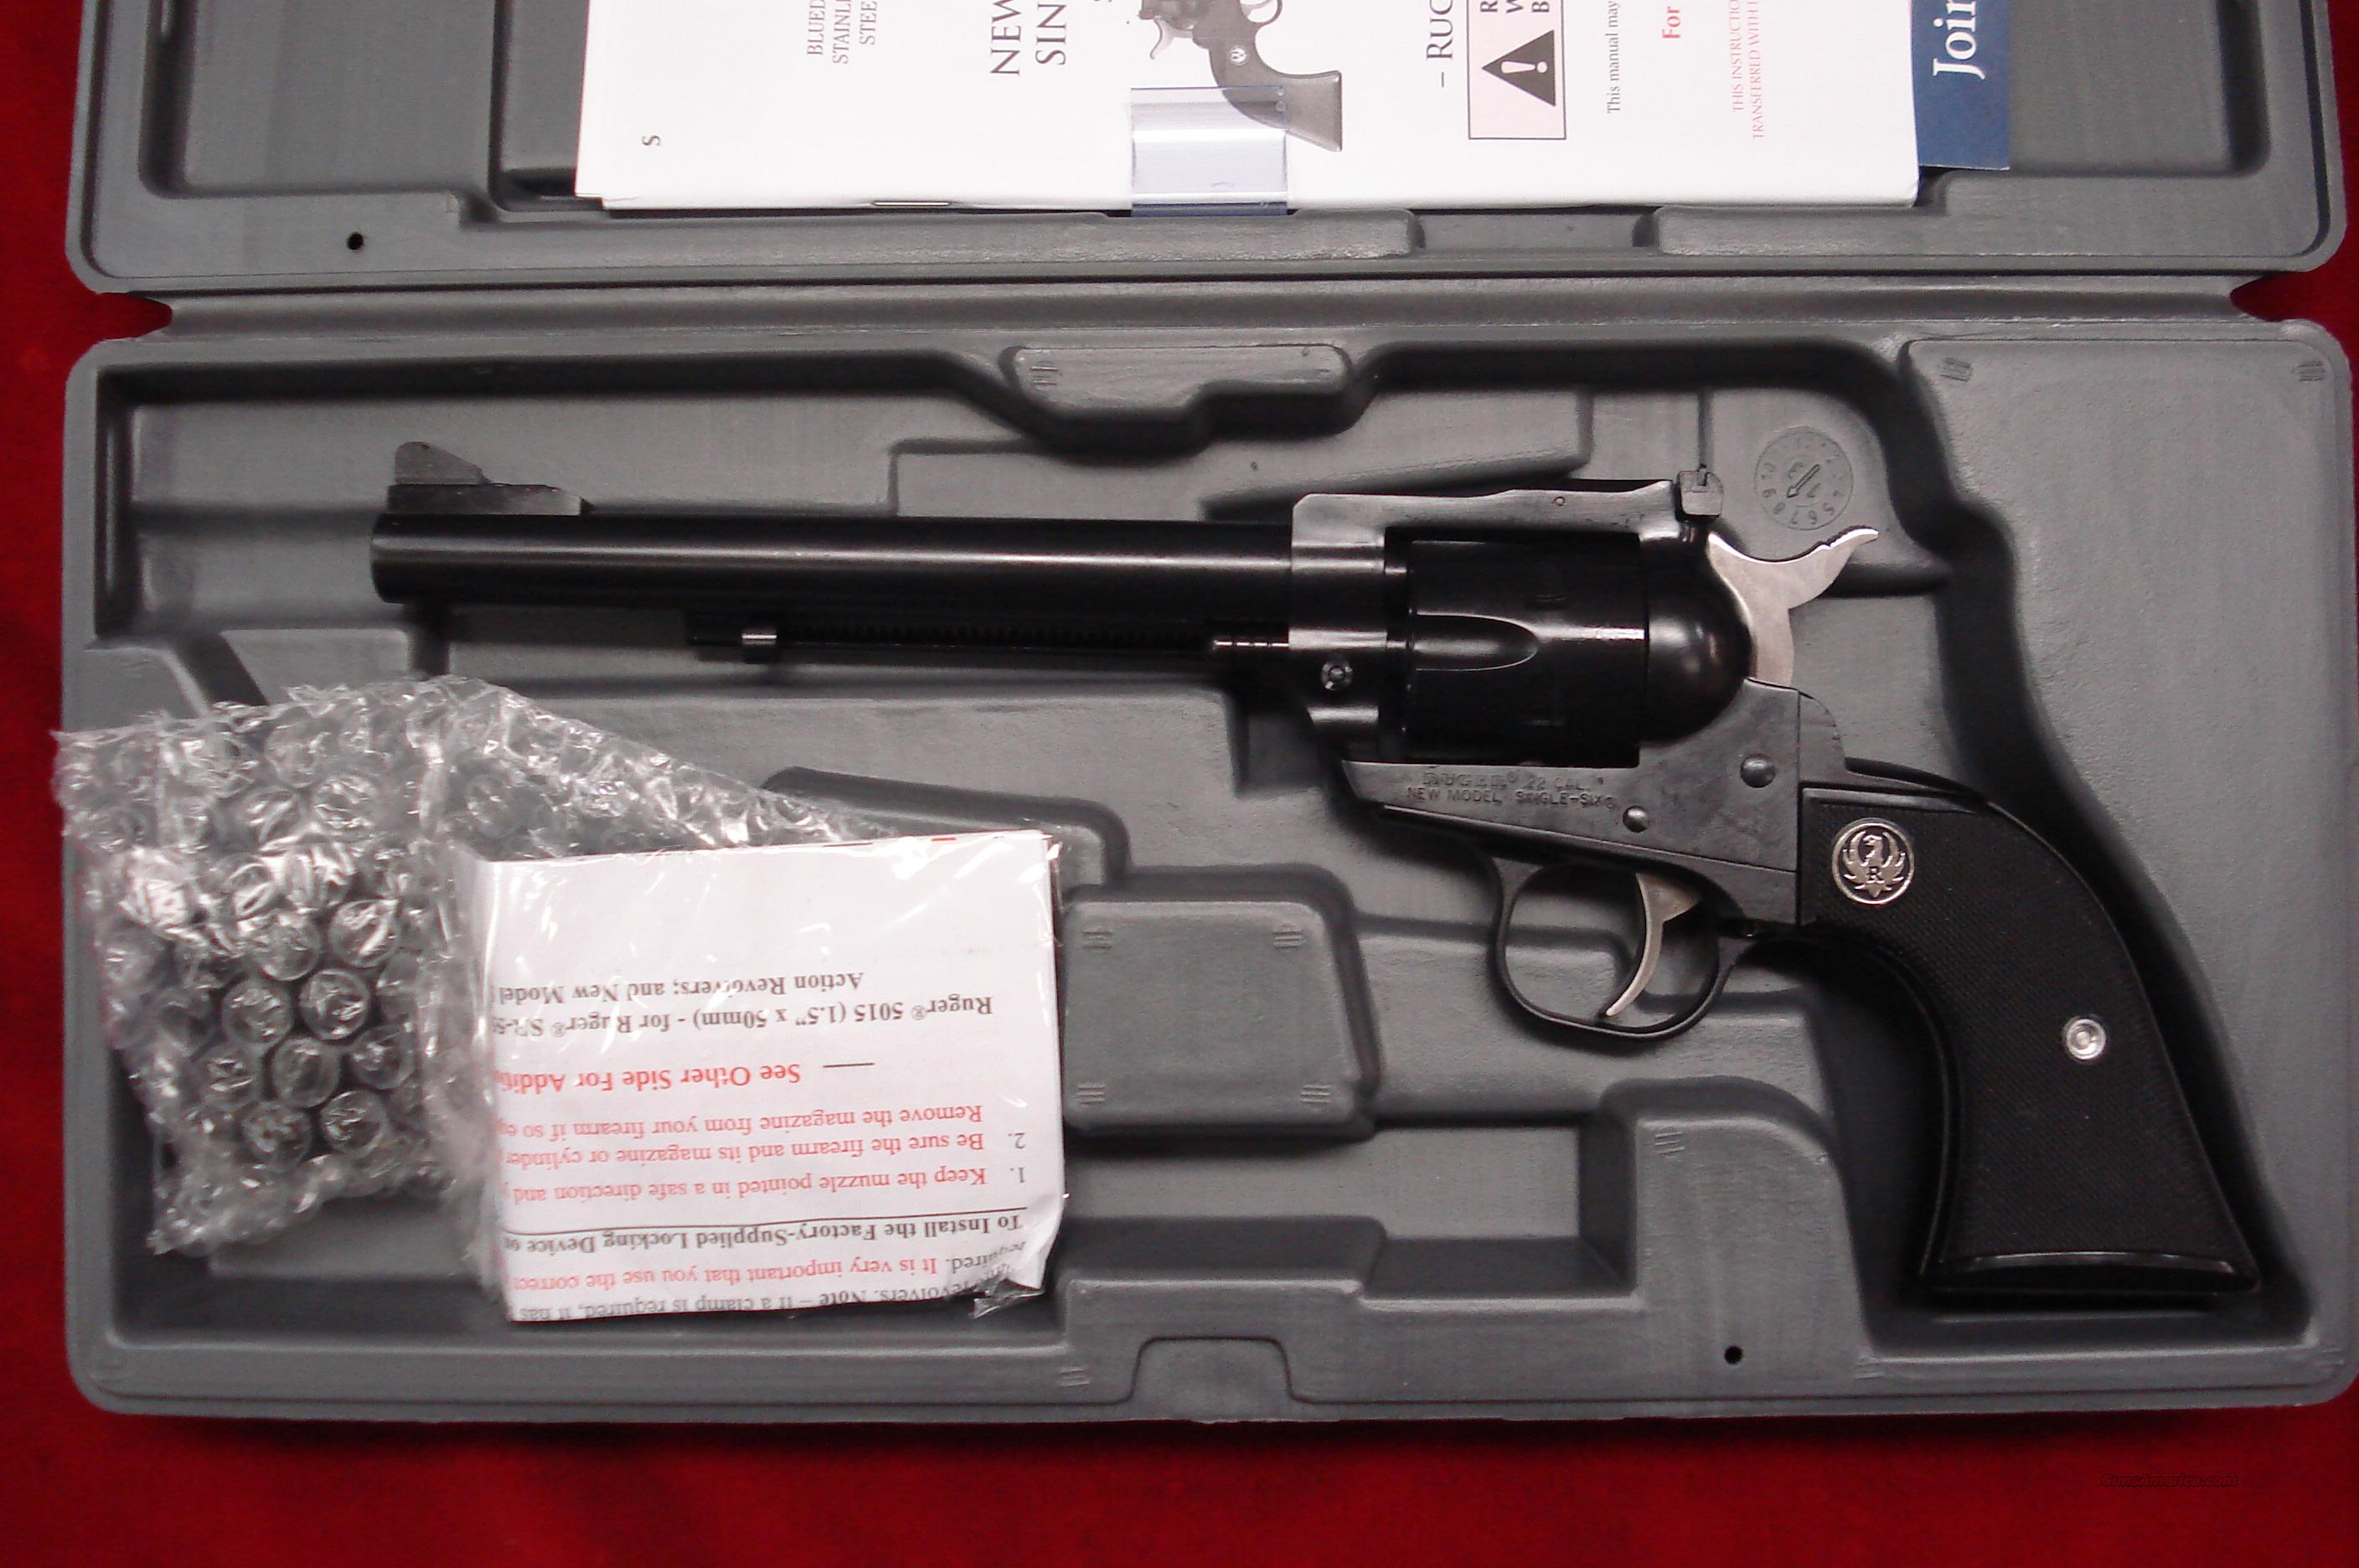 "RUGER SINGLE SIX CONVERTABLE 22LR/ 22MAG BLUED 6.5"" NEW (NR-6)  (00622)   Guns > Pistols > Ruger Single Action Revolvers > Single Six Type"